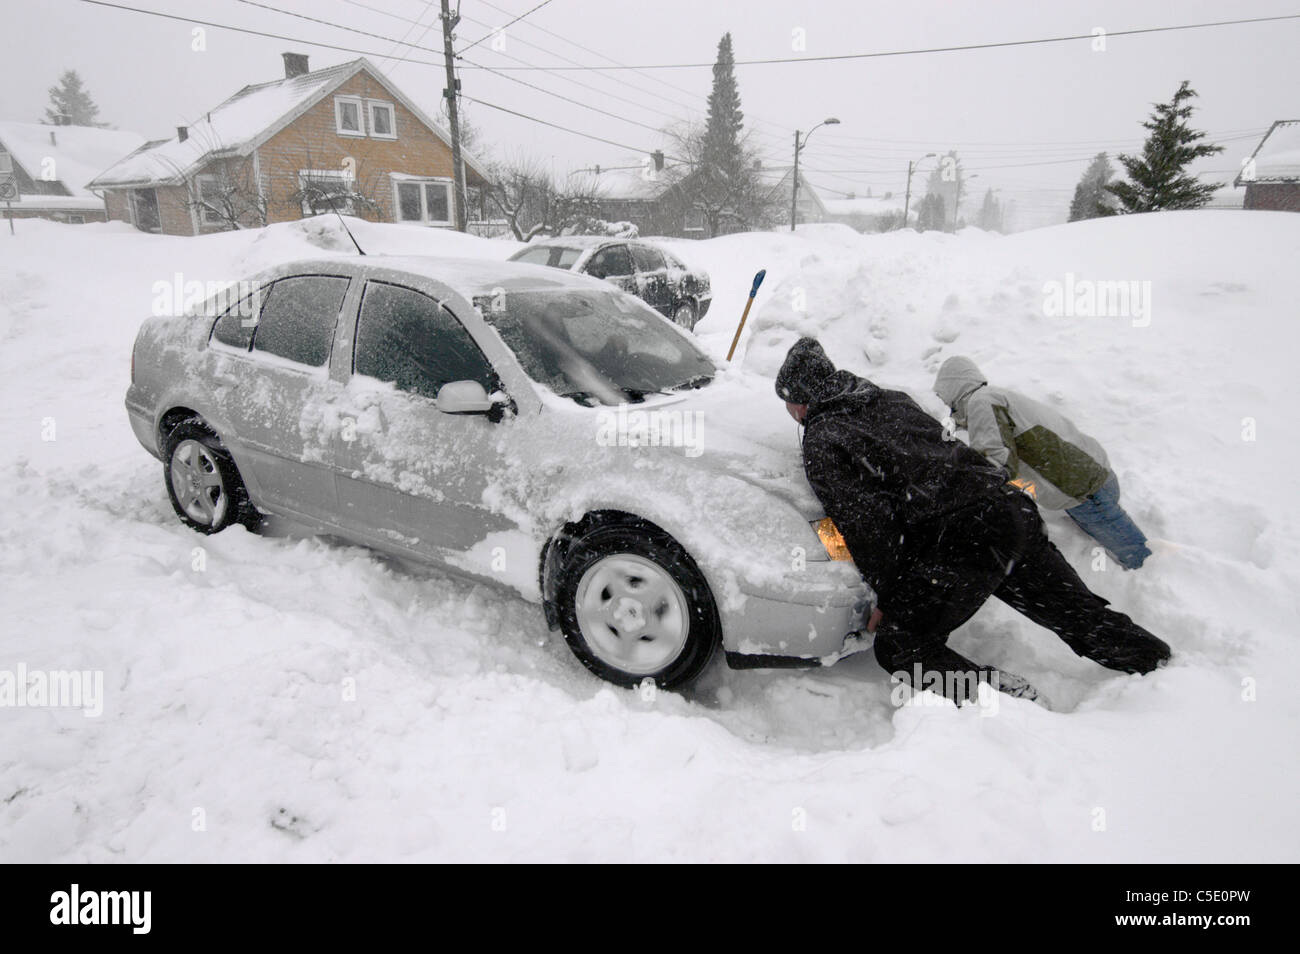 Image result for images of getting car out of snow